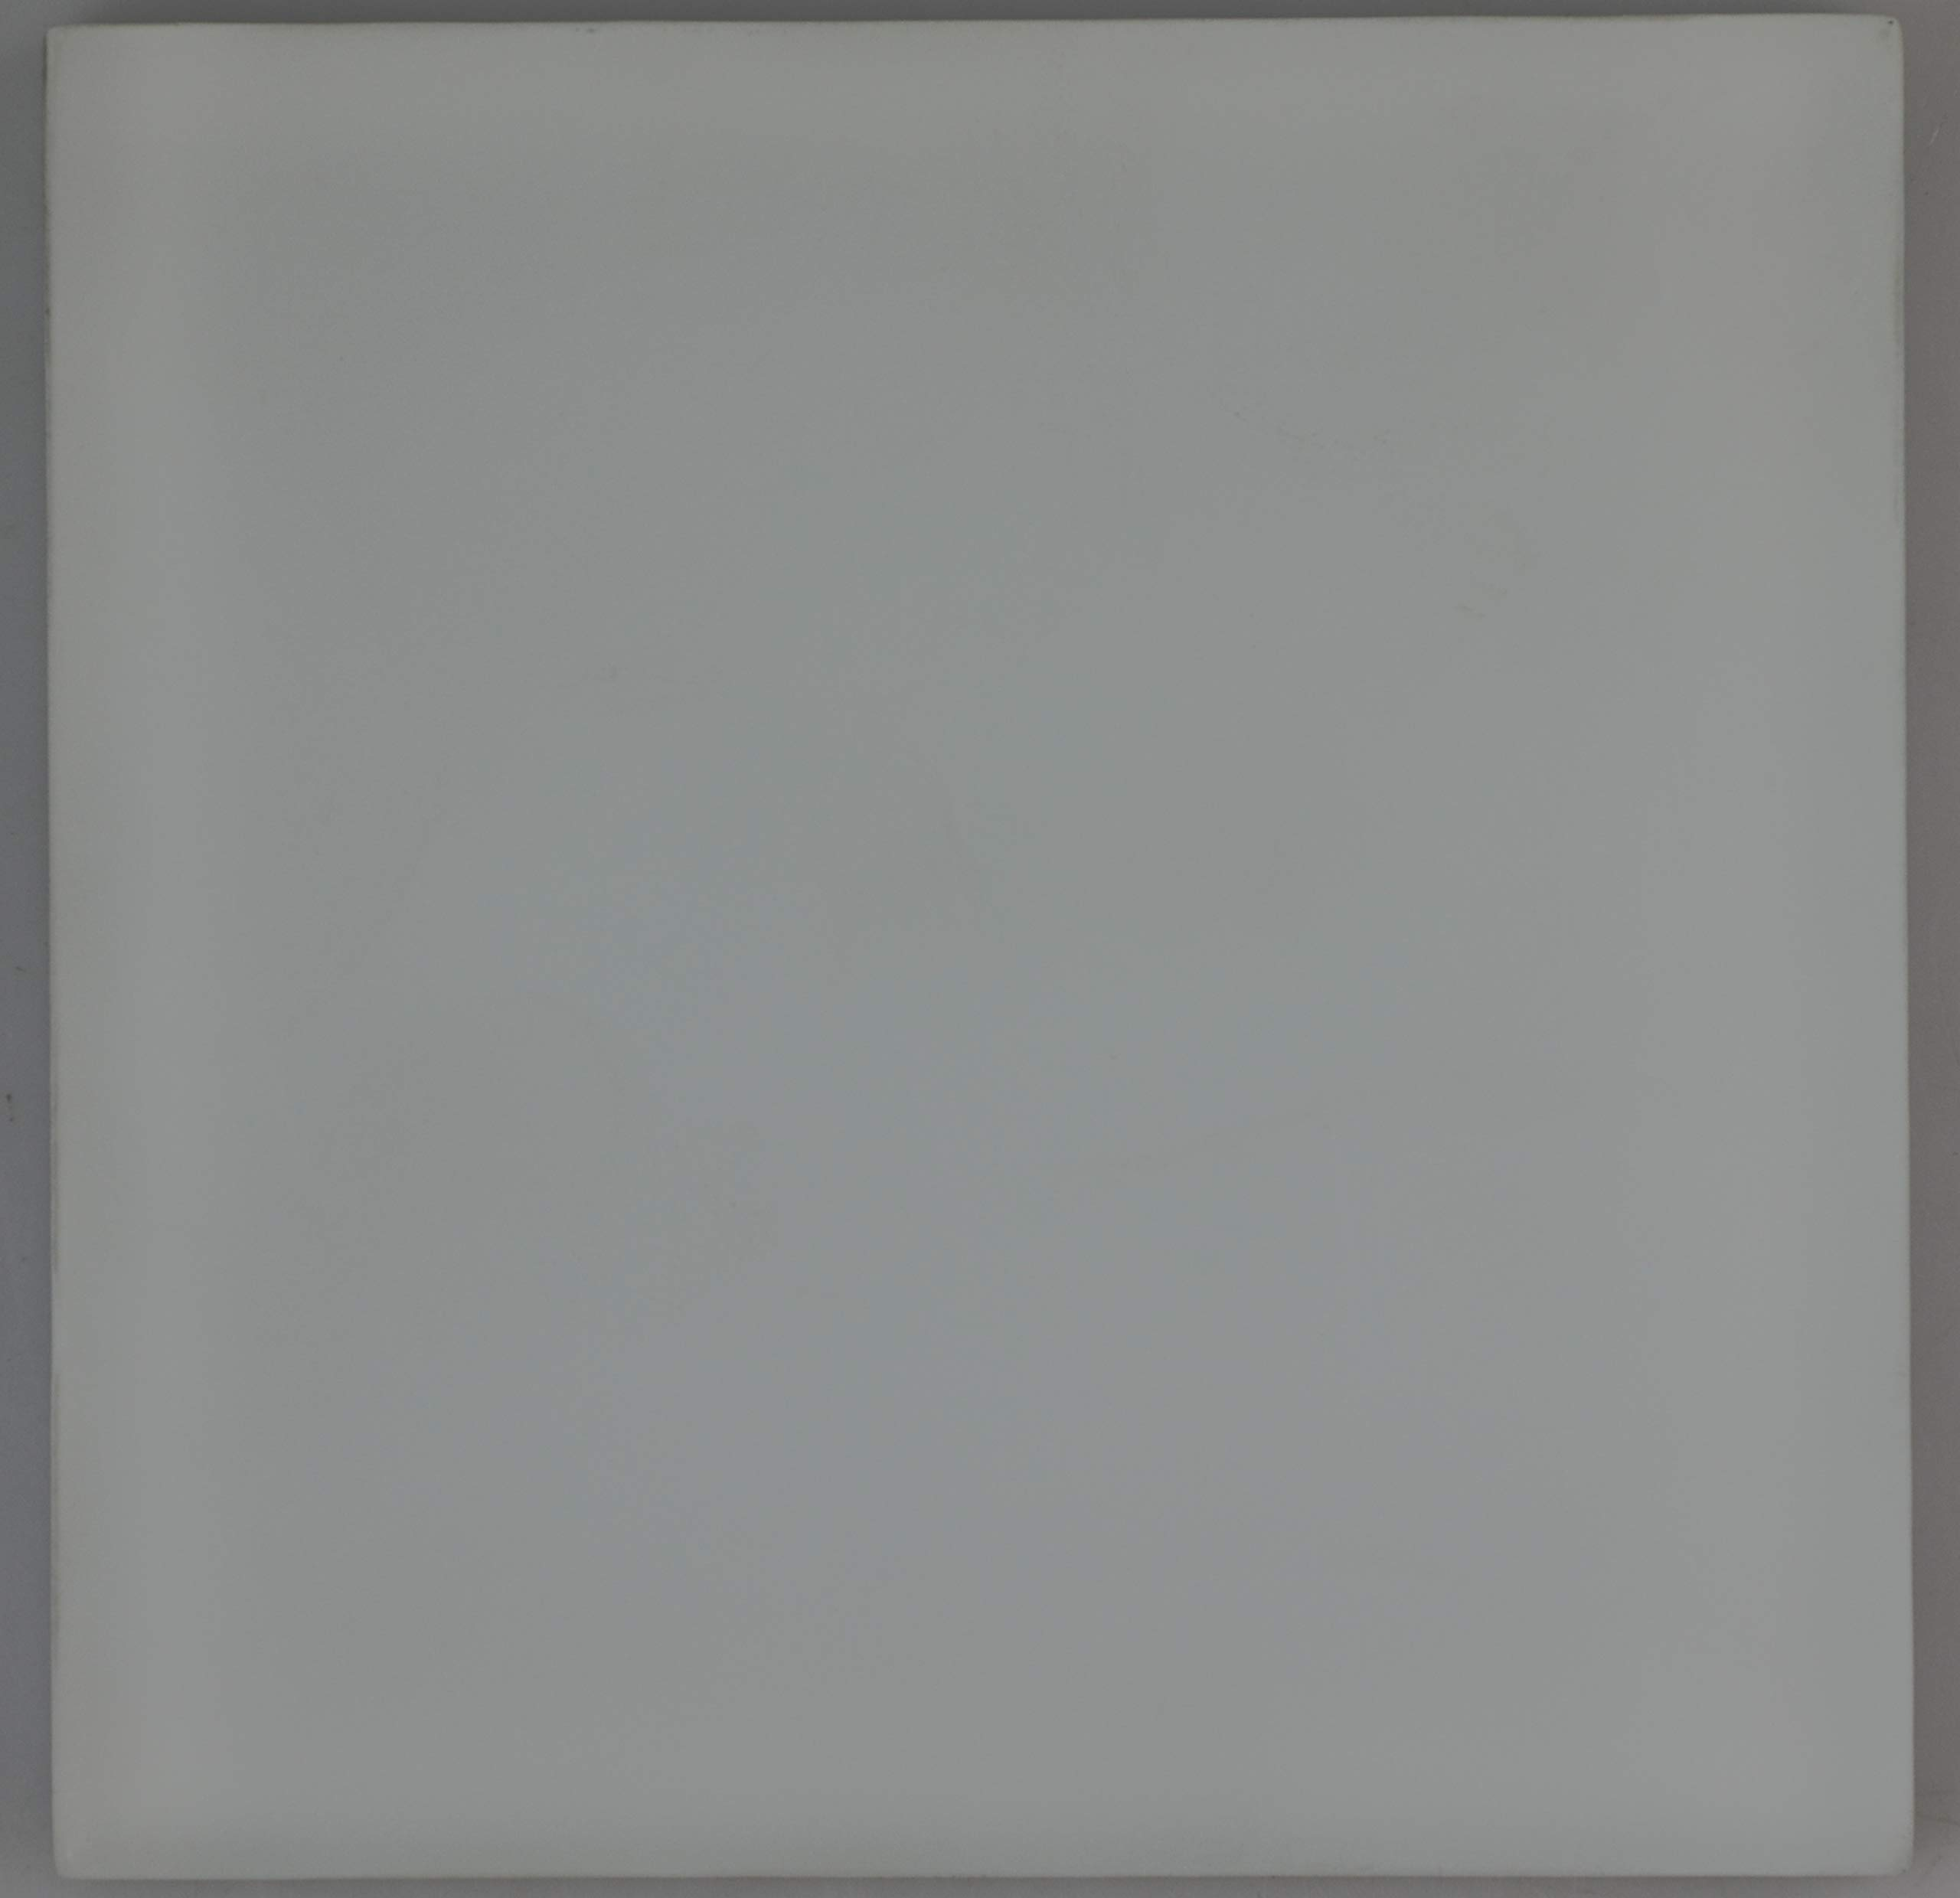 GLT Super White 4X4 Glass Wall Tile Frosted, Sold by The Carton, 80 Pieces per Carton.